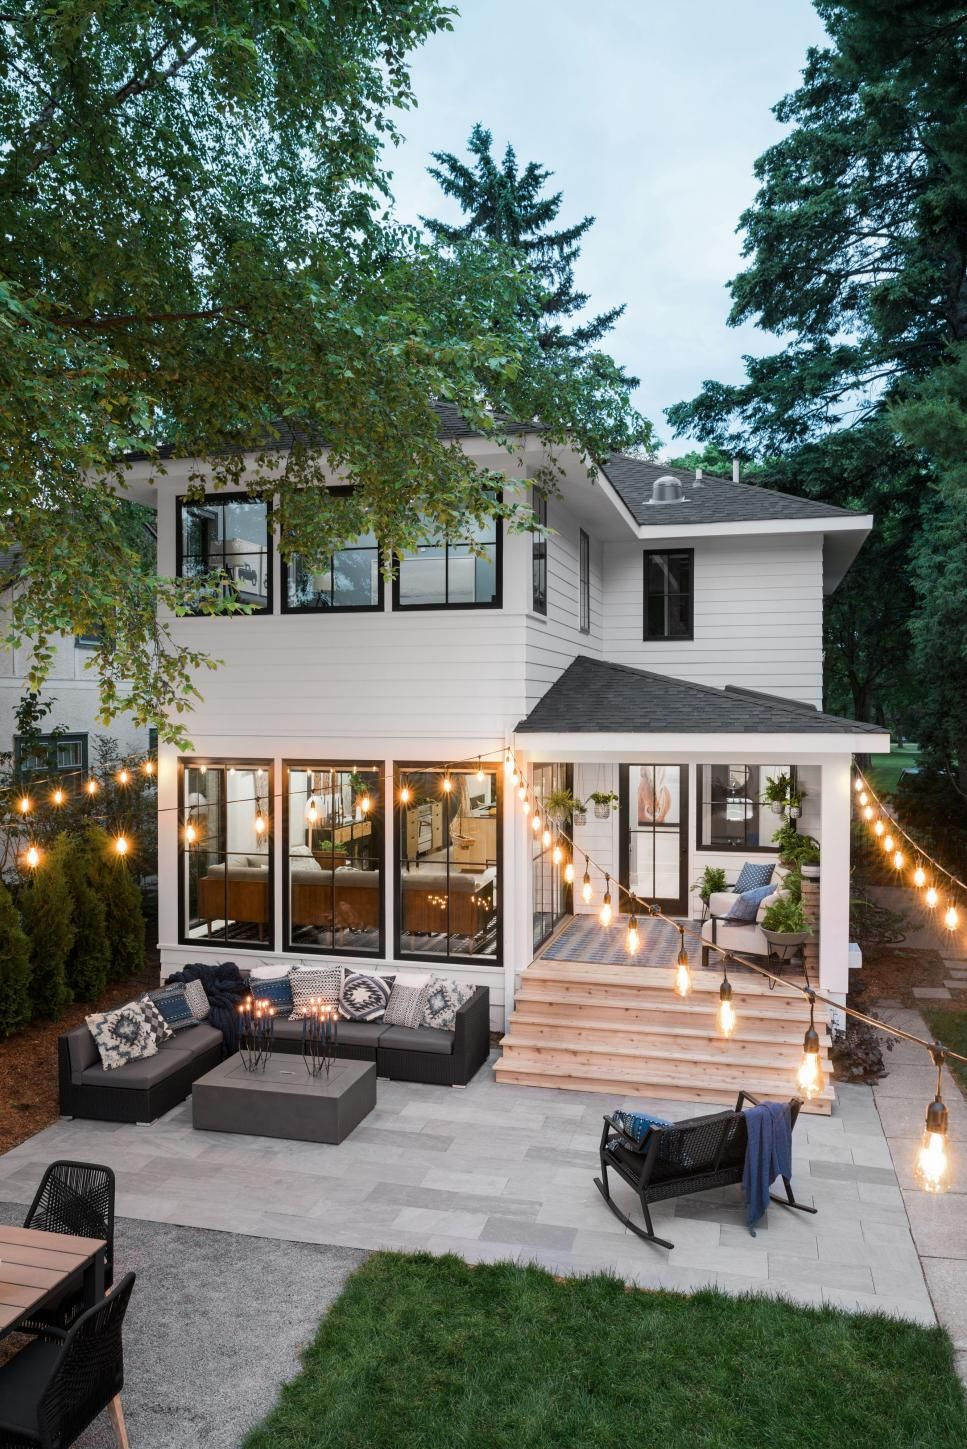 Backyard Pictures From HGTV Urban Oasis 2019